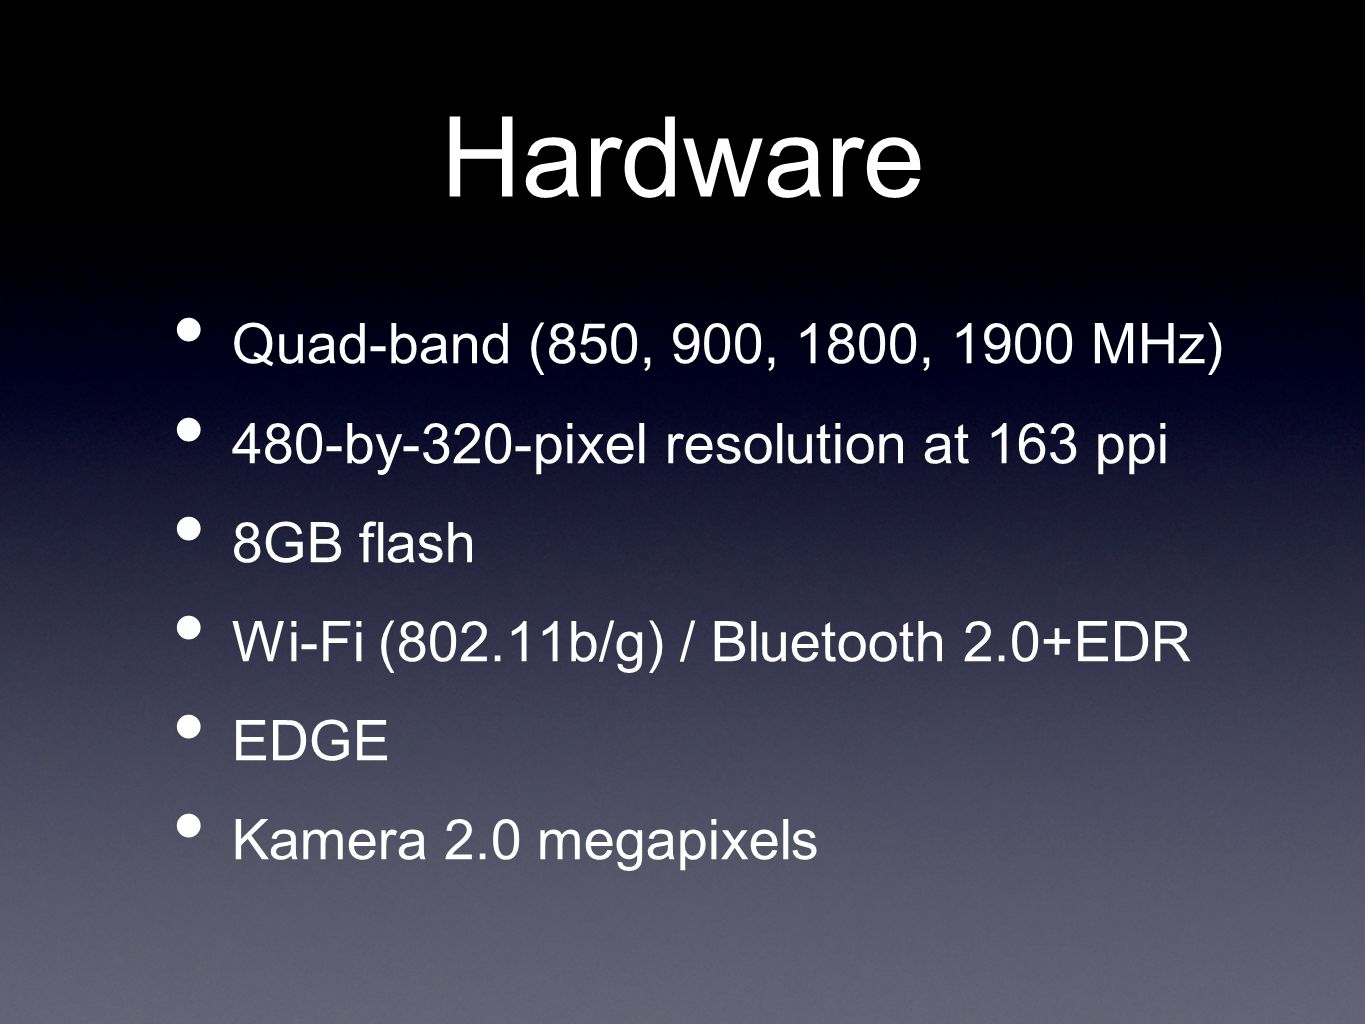 Hardware Quad-band (850, 900, 1800, 1900 MHz) 480-by-320-pixel resolution at 163 ppi 8GB flash Wi-Fi (802.11b/g) / Bluetooth 2.0+EDR EDGE Kamera 2.0 megapixels